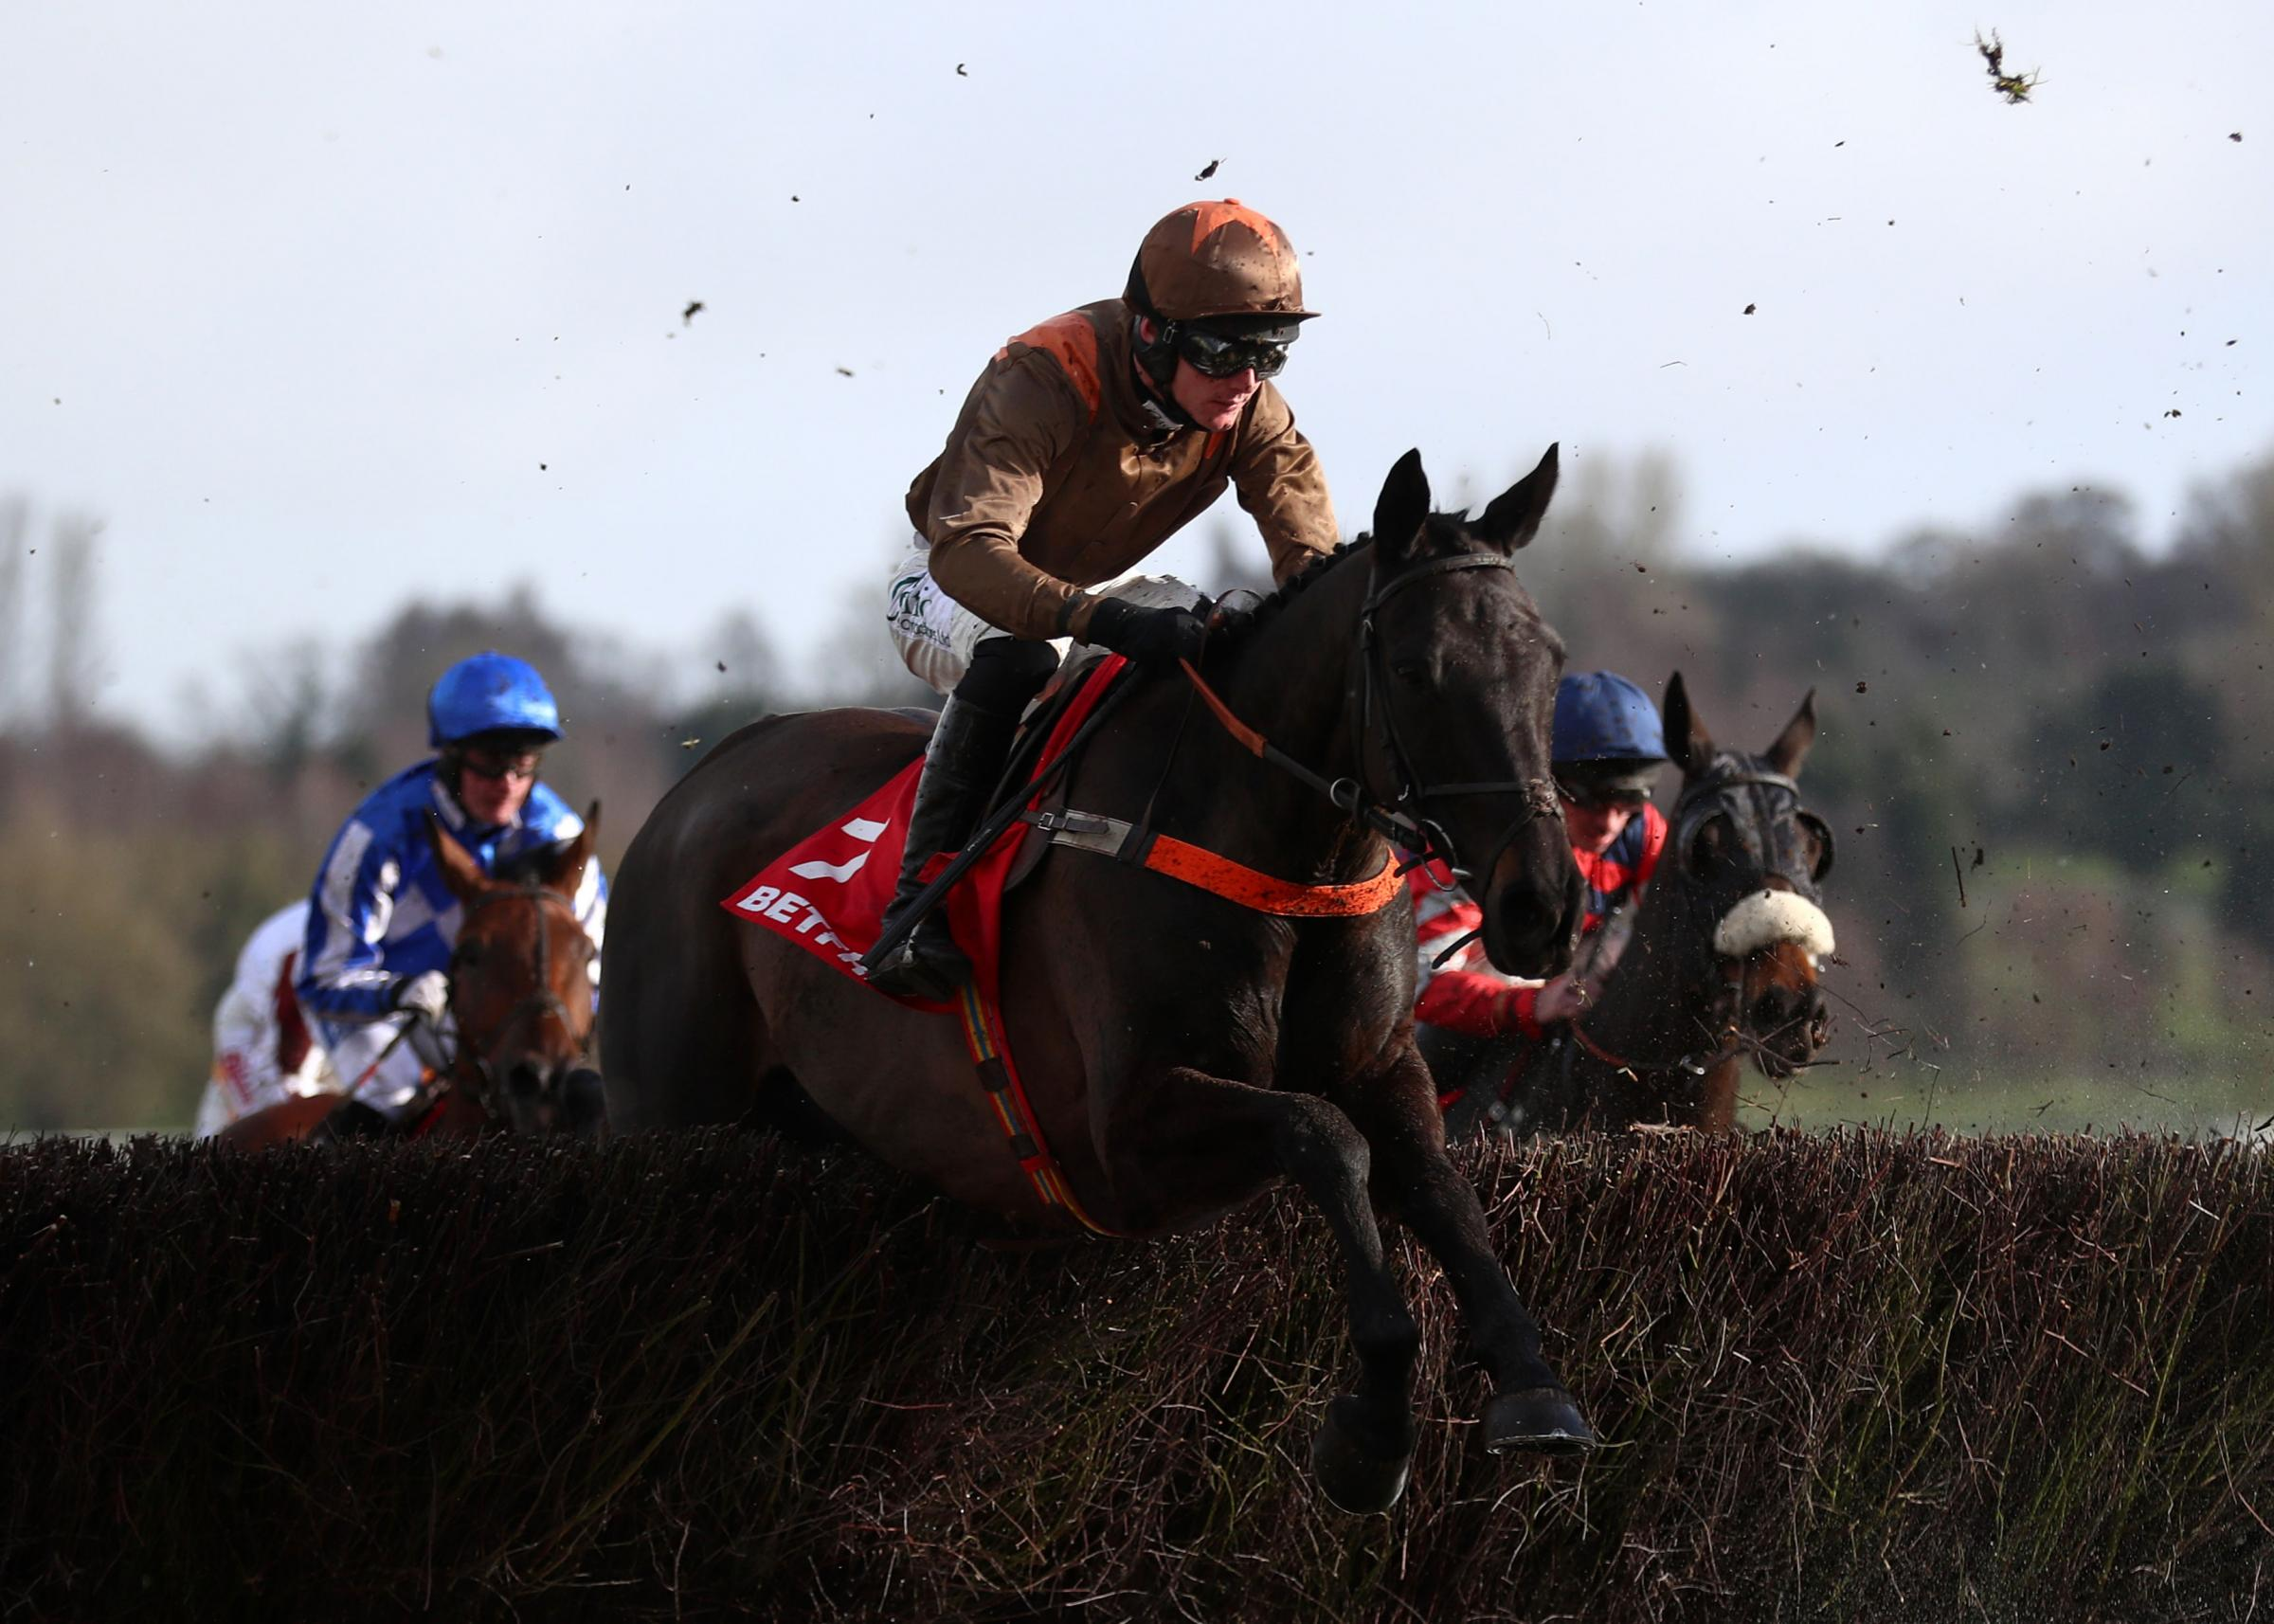 Regal Flow ridden by Sean Houlihan before winning the Betfred Midlands Grand National during Betfred Midlands Grand National Day at Uttoxeter Racecourse. Picture: PA